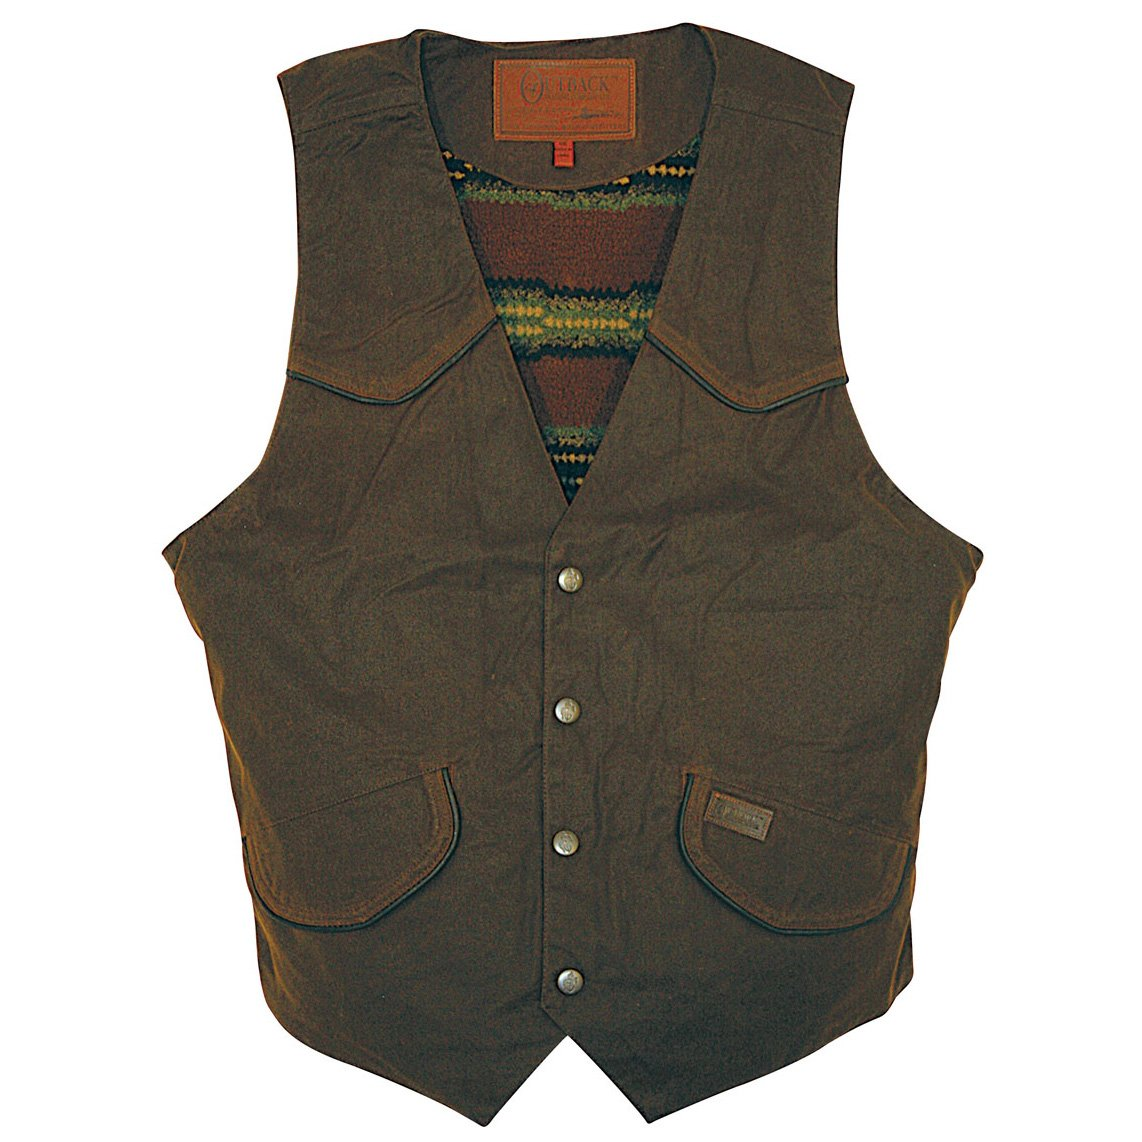 Outback Trading Company Cliffdweller Oilskin Vest 080124